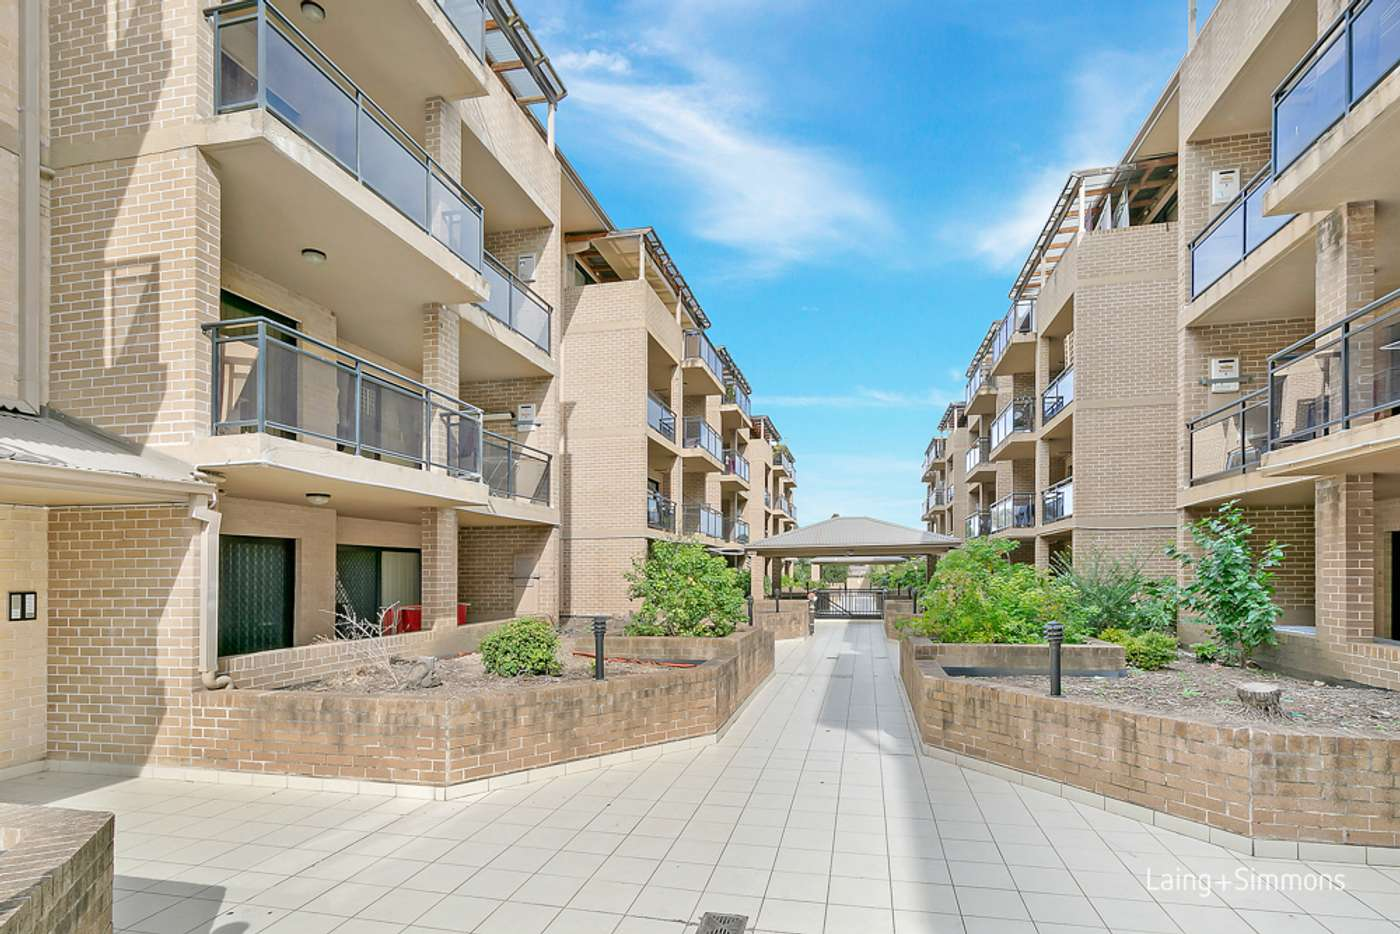 Main view of Homely unit listing, 64/1-5 Durham Street, Mount Druitt NSW 2770